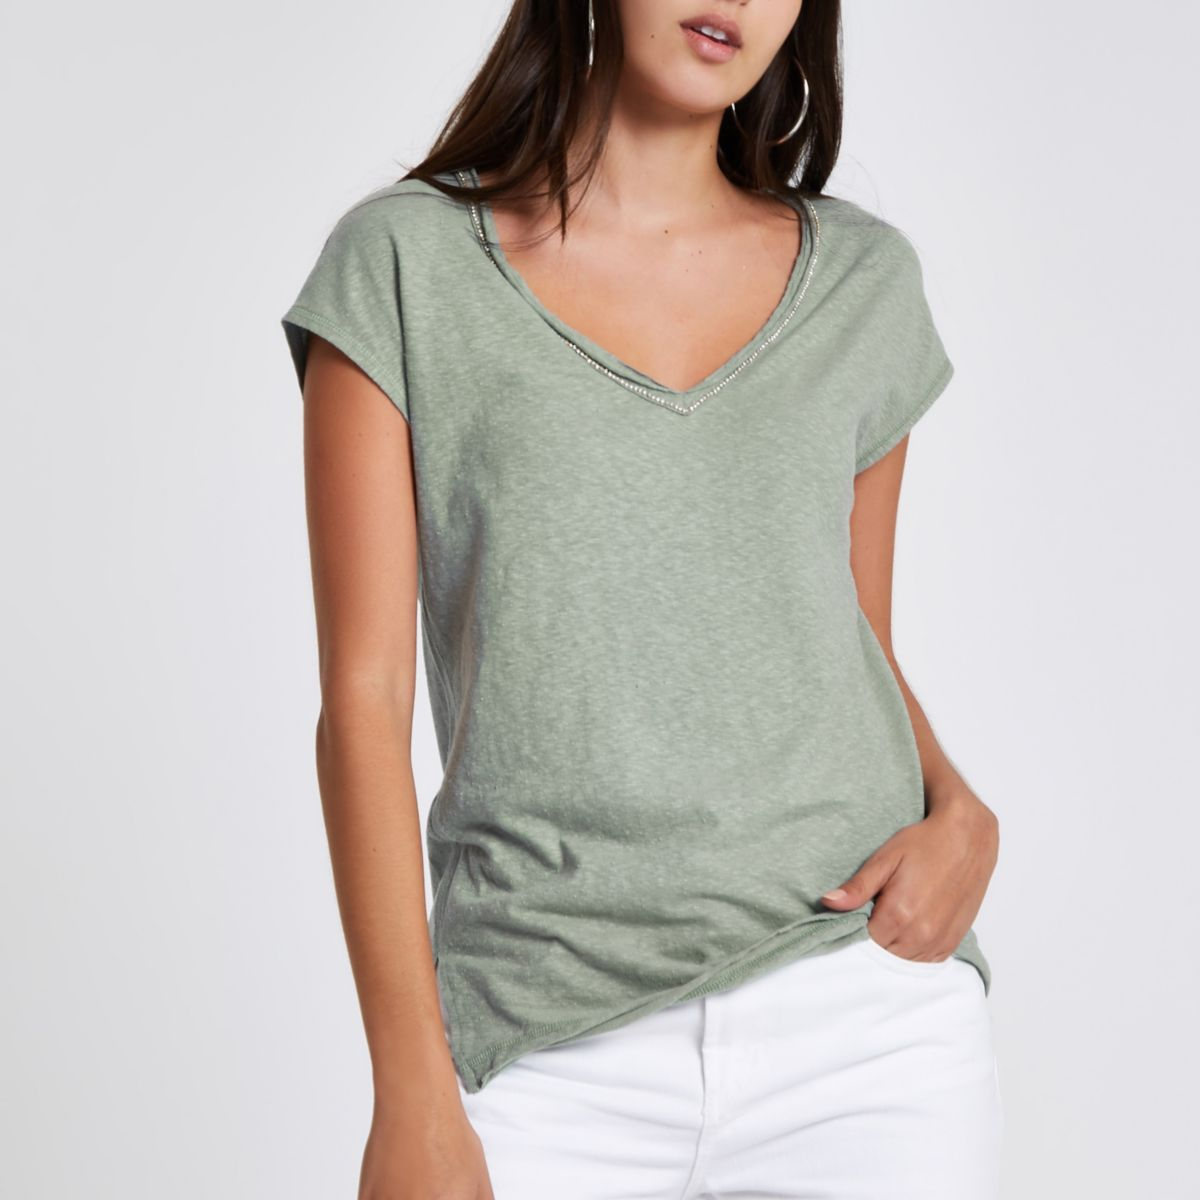 Green rhinestone neck embellished T-shirt